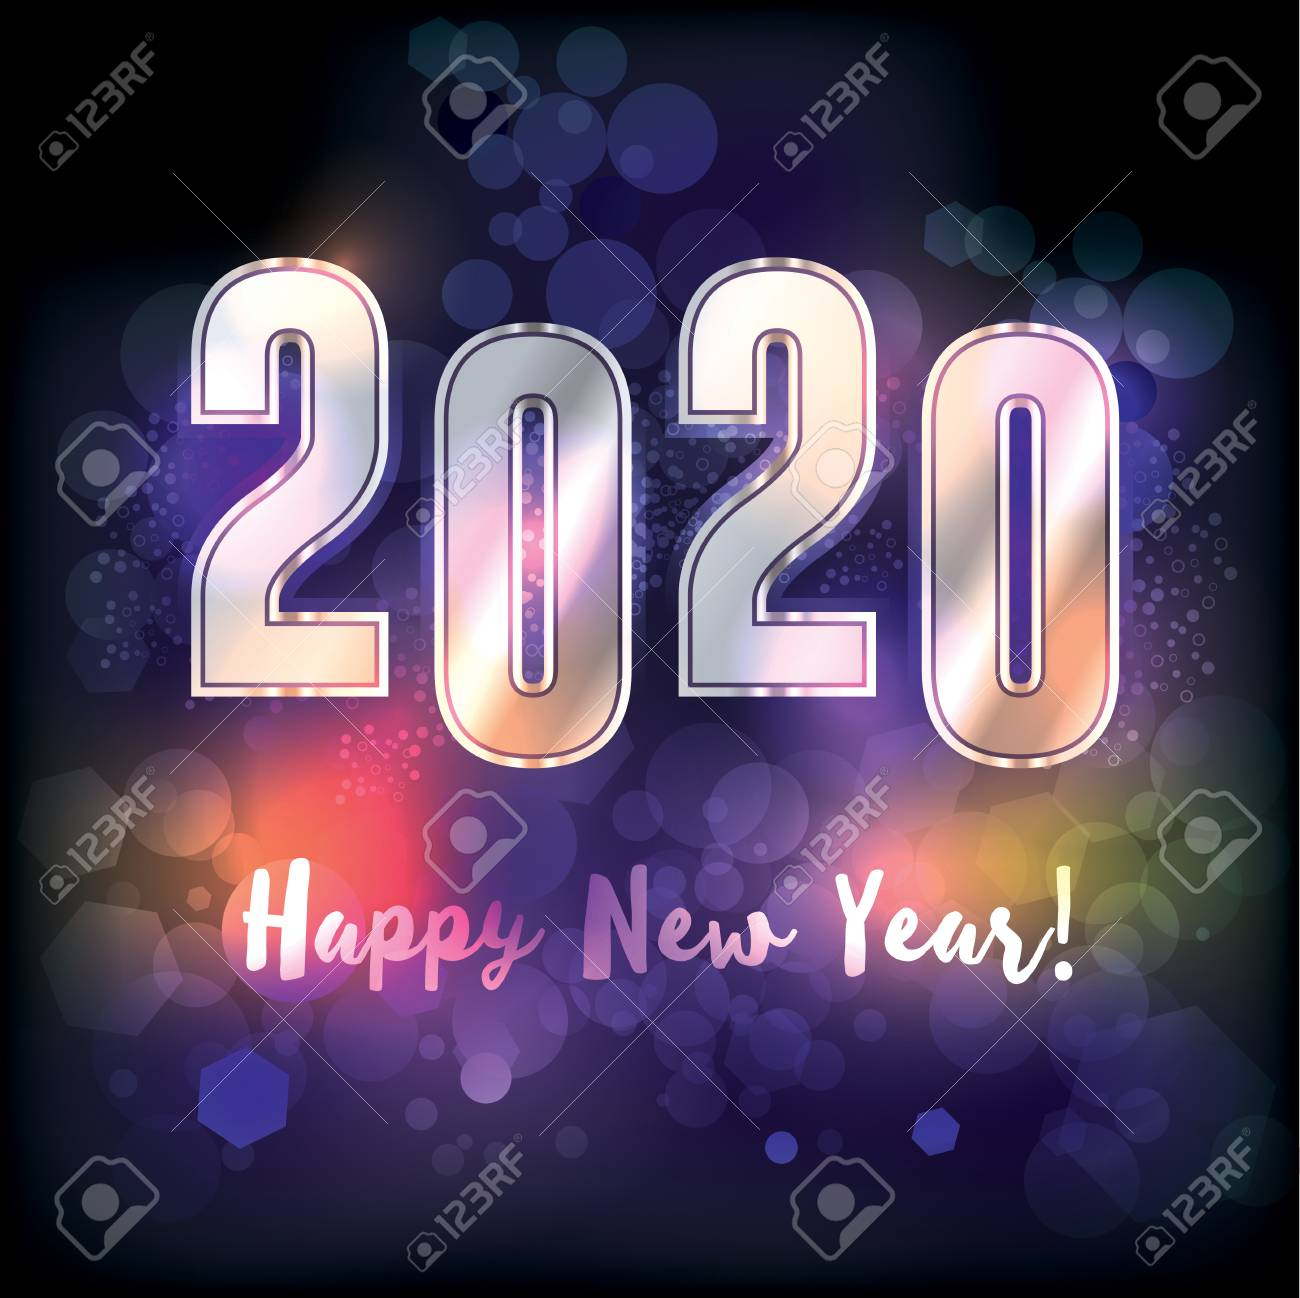 A Happy New Year 2020 New Year\'s Message Illustration. Vector ...